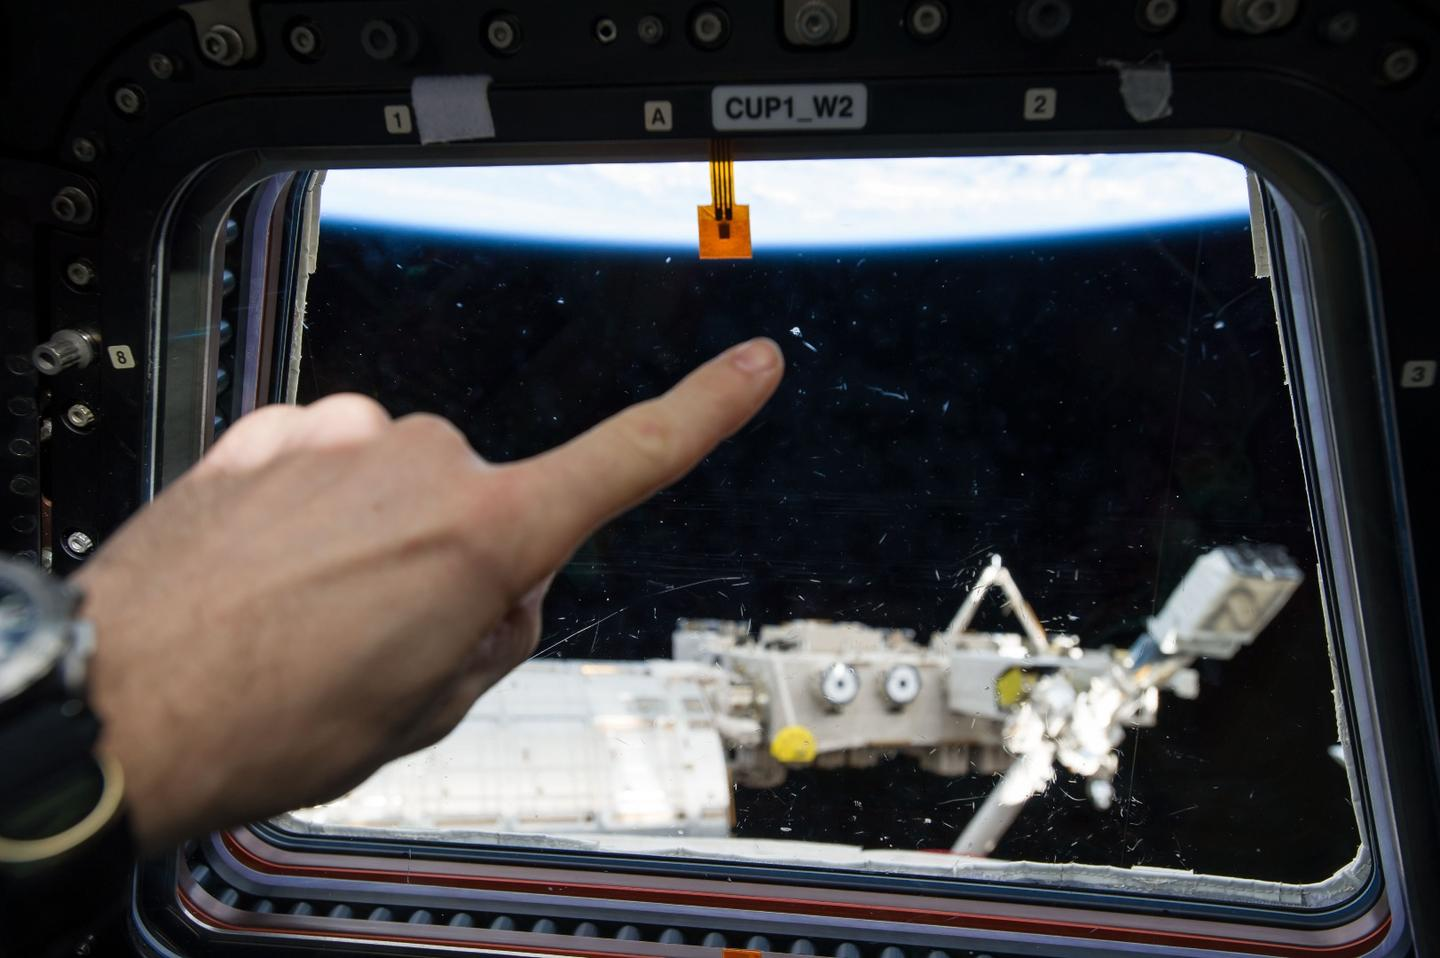 Photographic documentation of a Micro Meteor Orbital Debris strike on one of the window's within the International Space Station